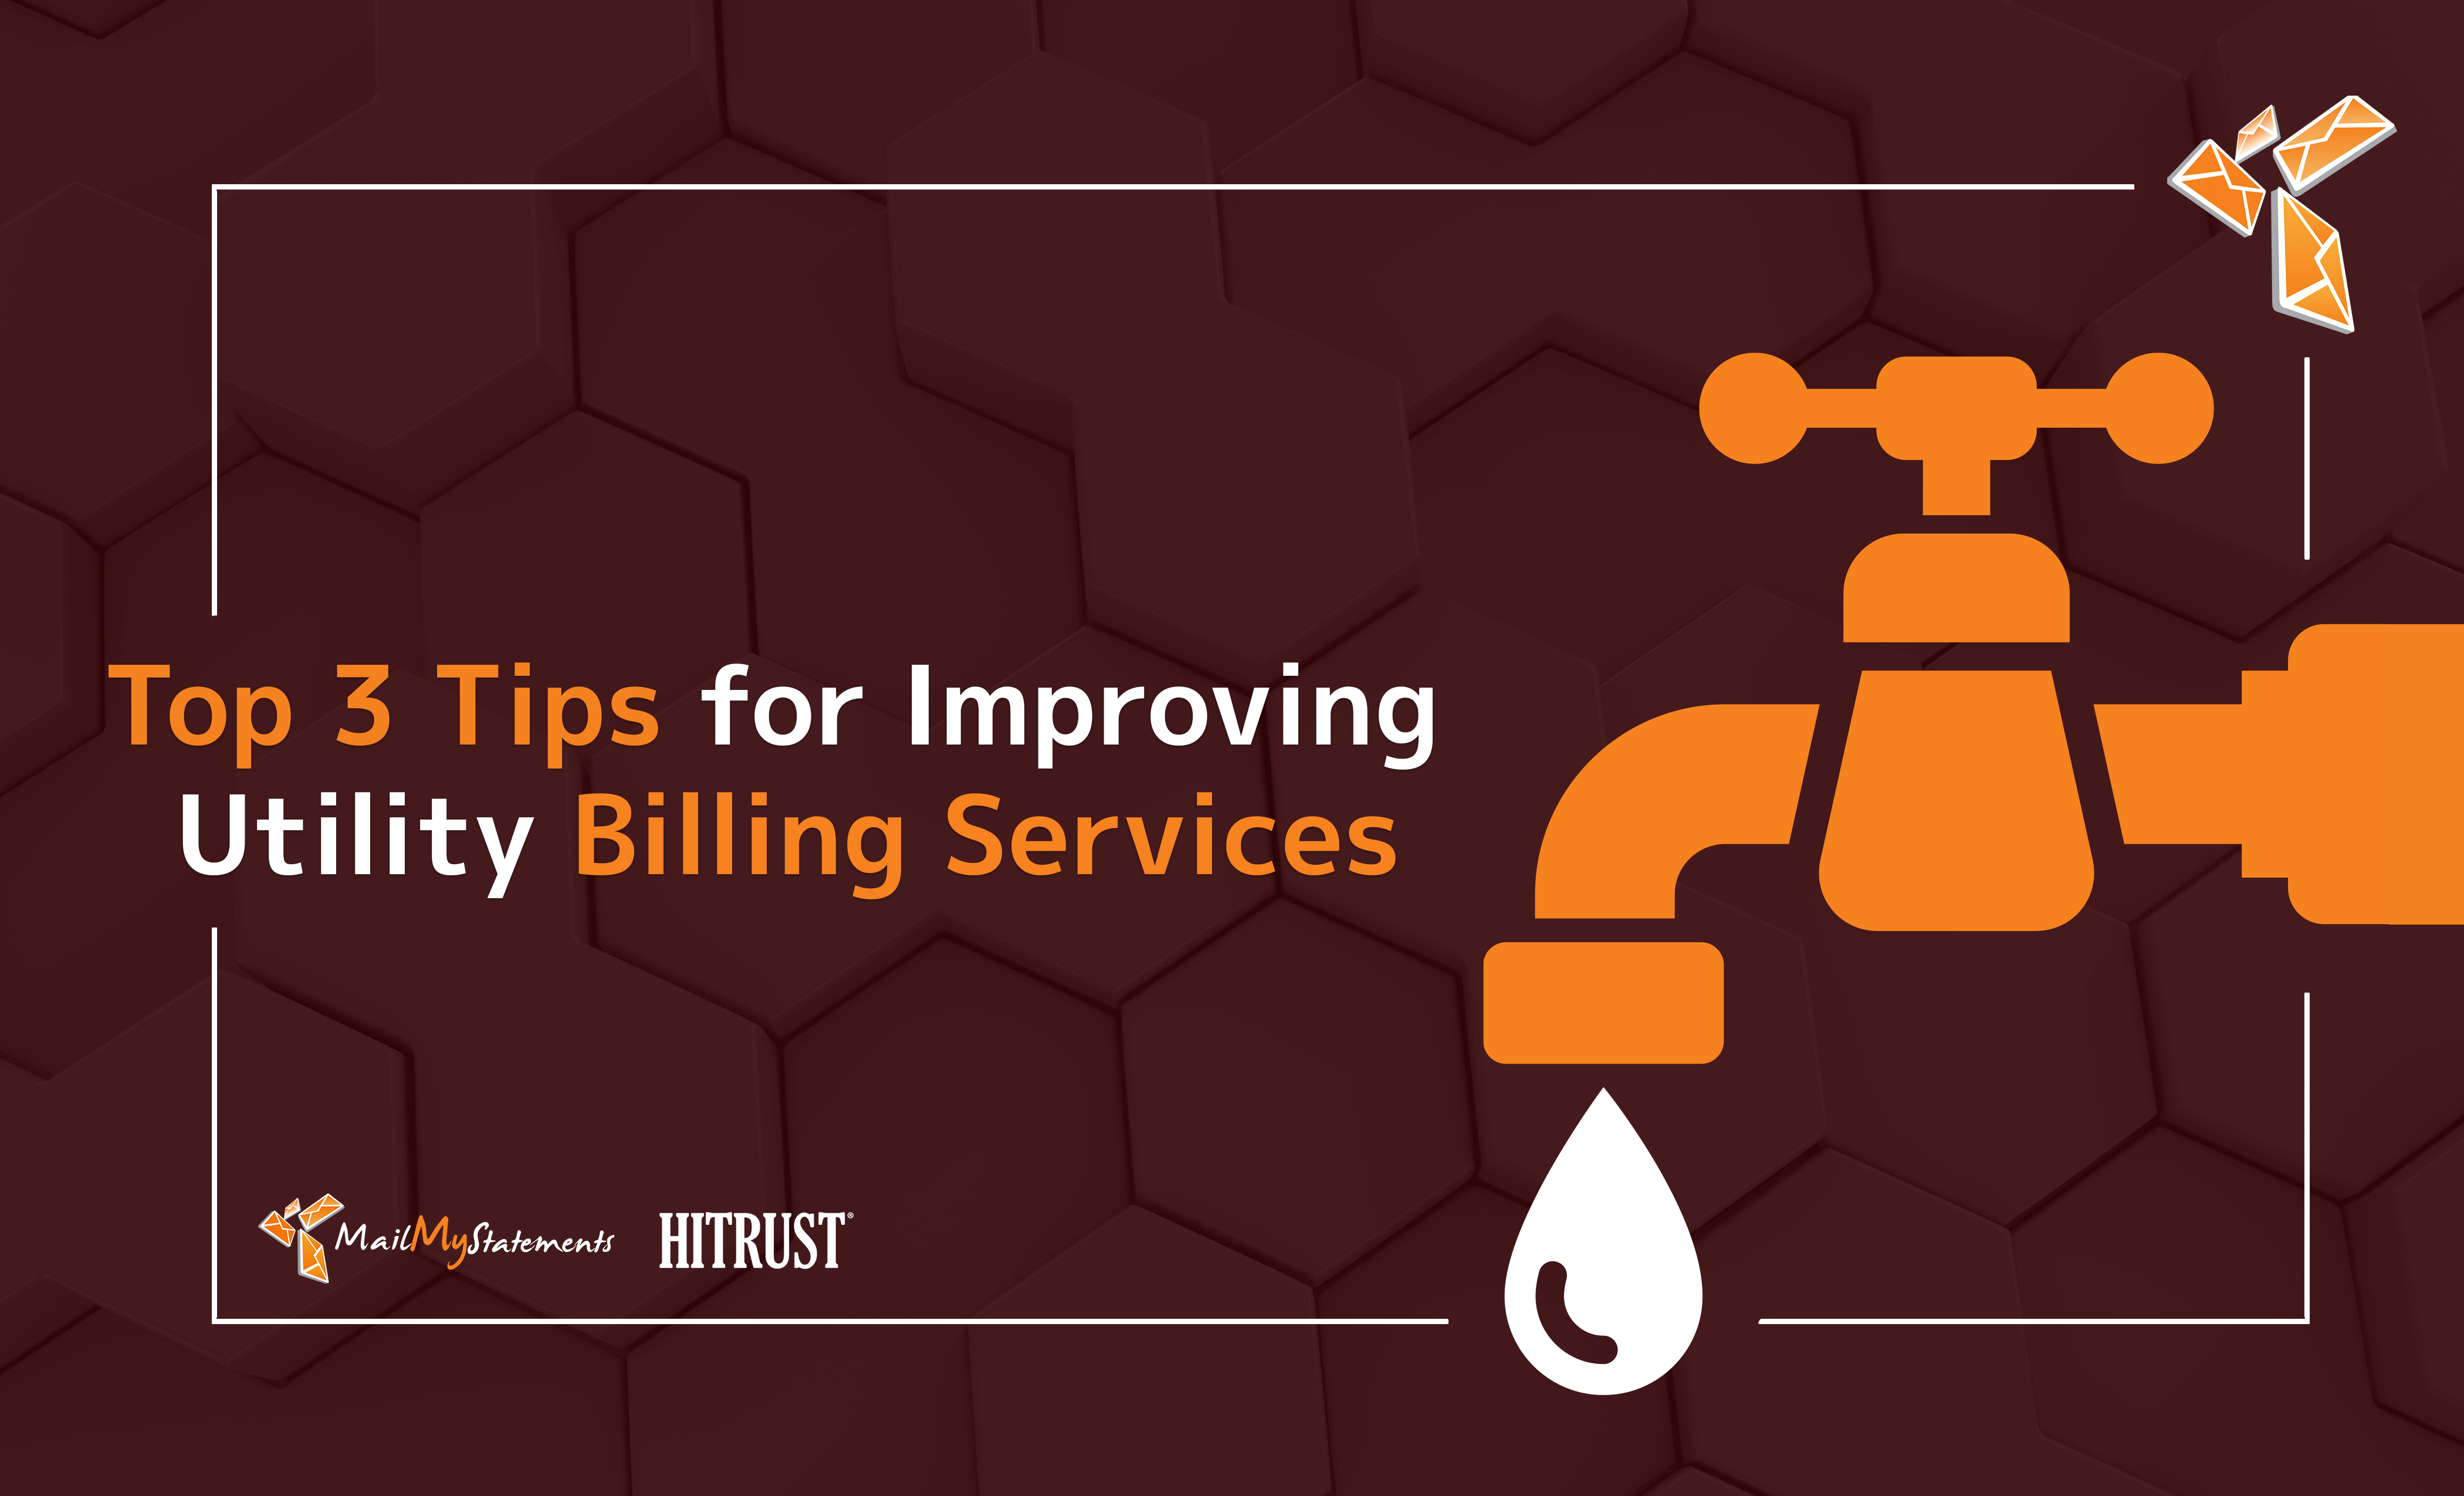 Top 3 Tips for Improving Utility Billing Services